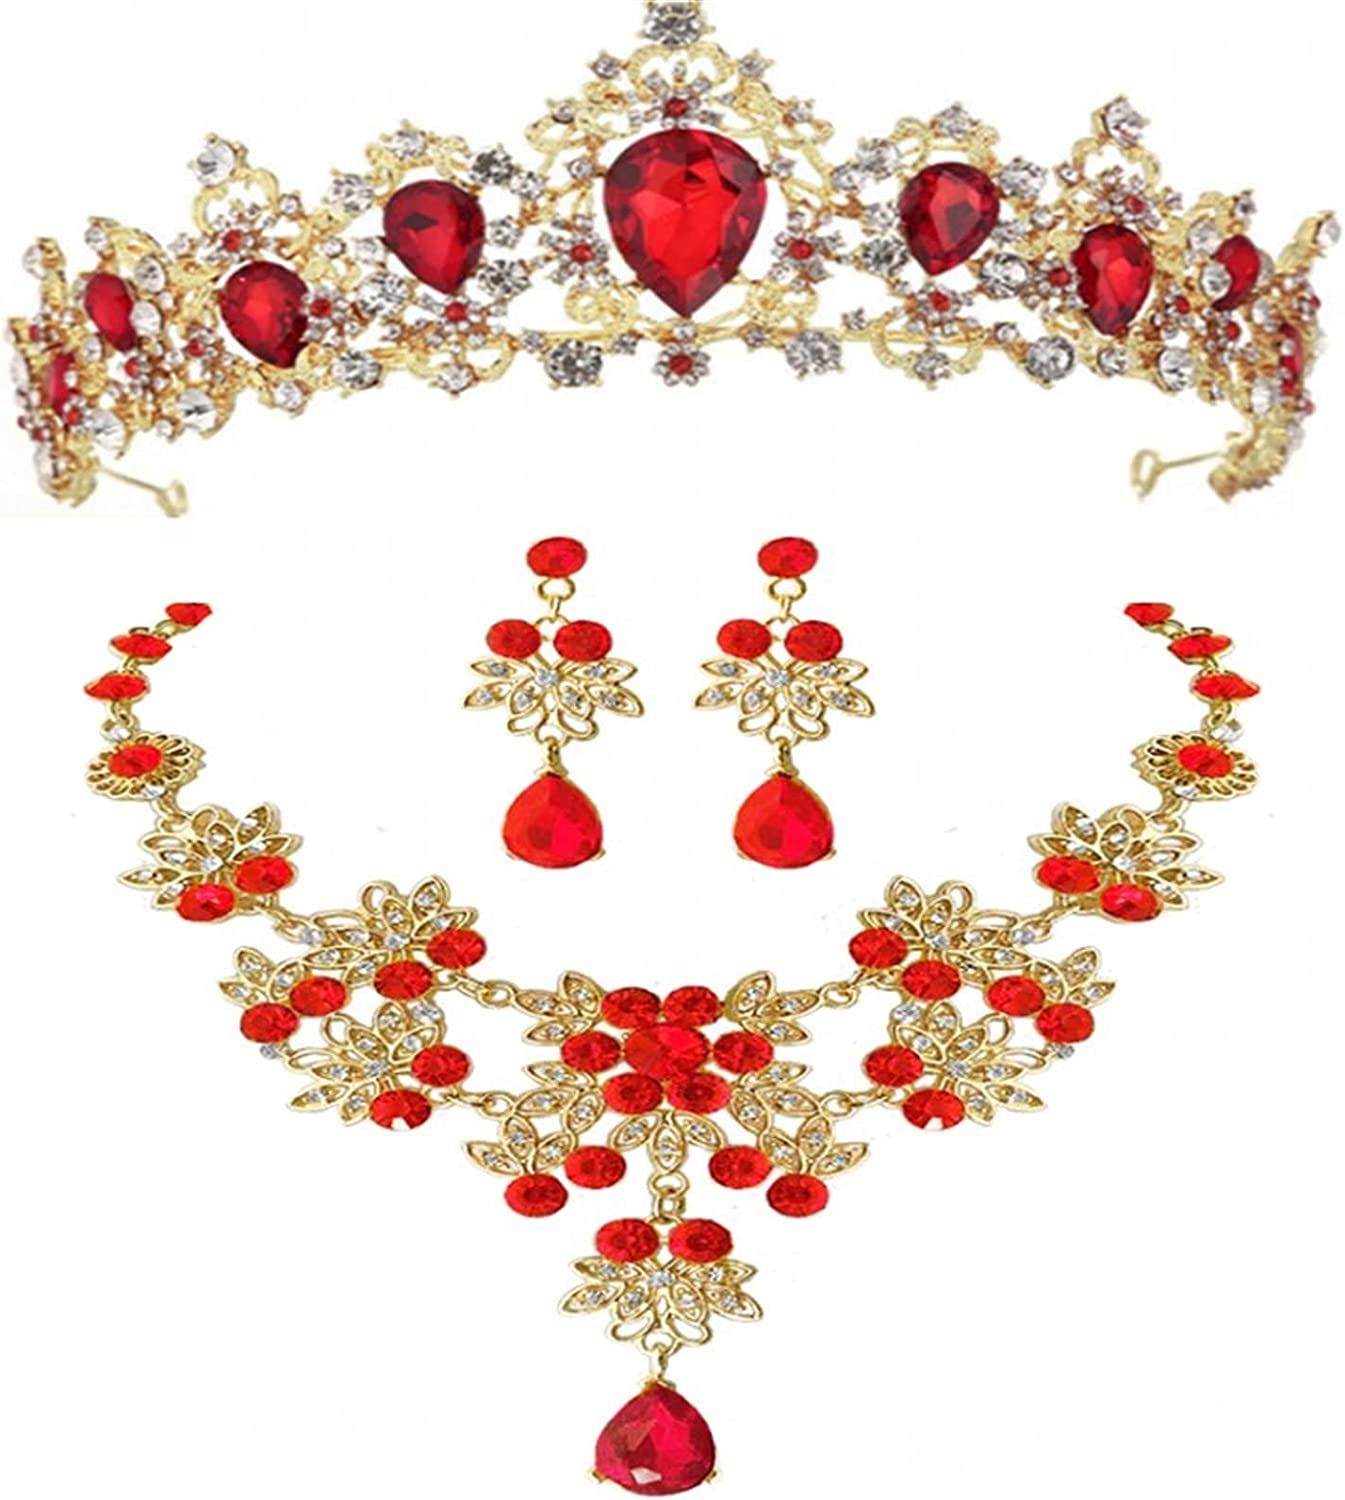 YUANBOO Baroque Vintage Gold Red Green Blue Crystal Bridal Jewelry Sets Necklace Earrings Tiara Set Wedding African Beads Jewelry Sets (Metal Color : 1Pcs Red Crown)